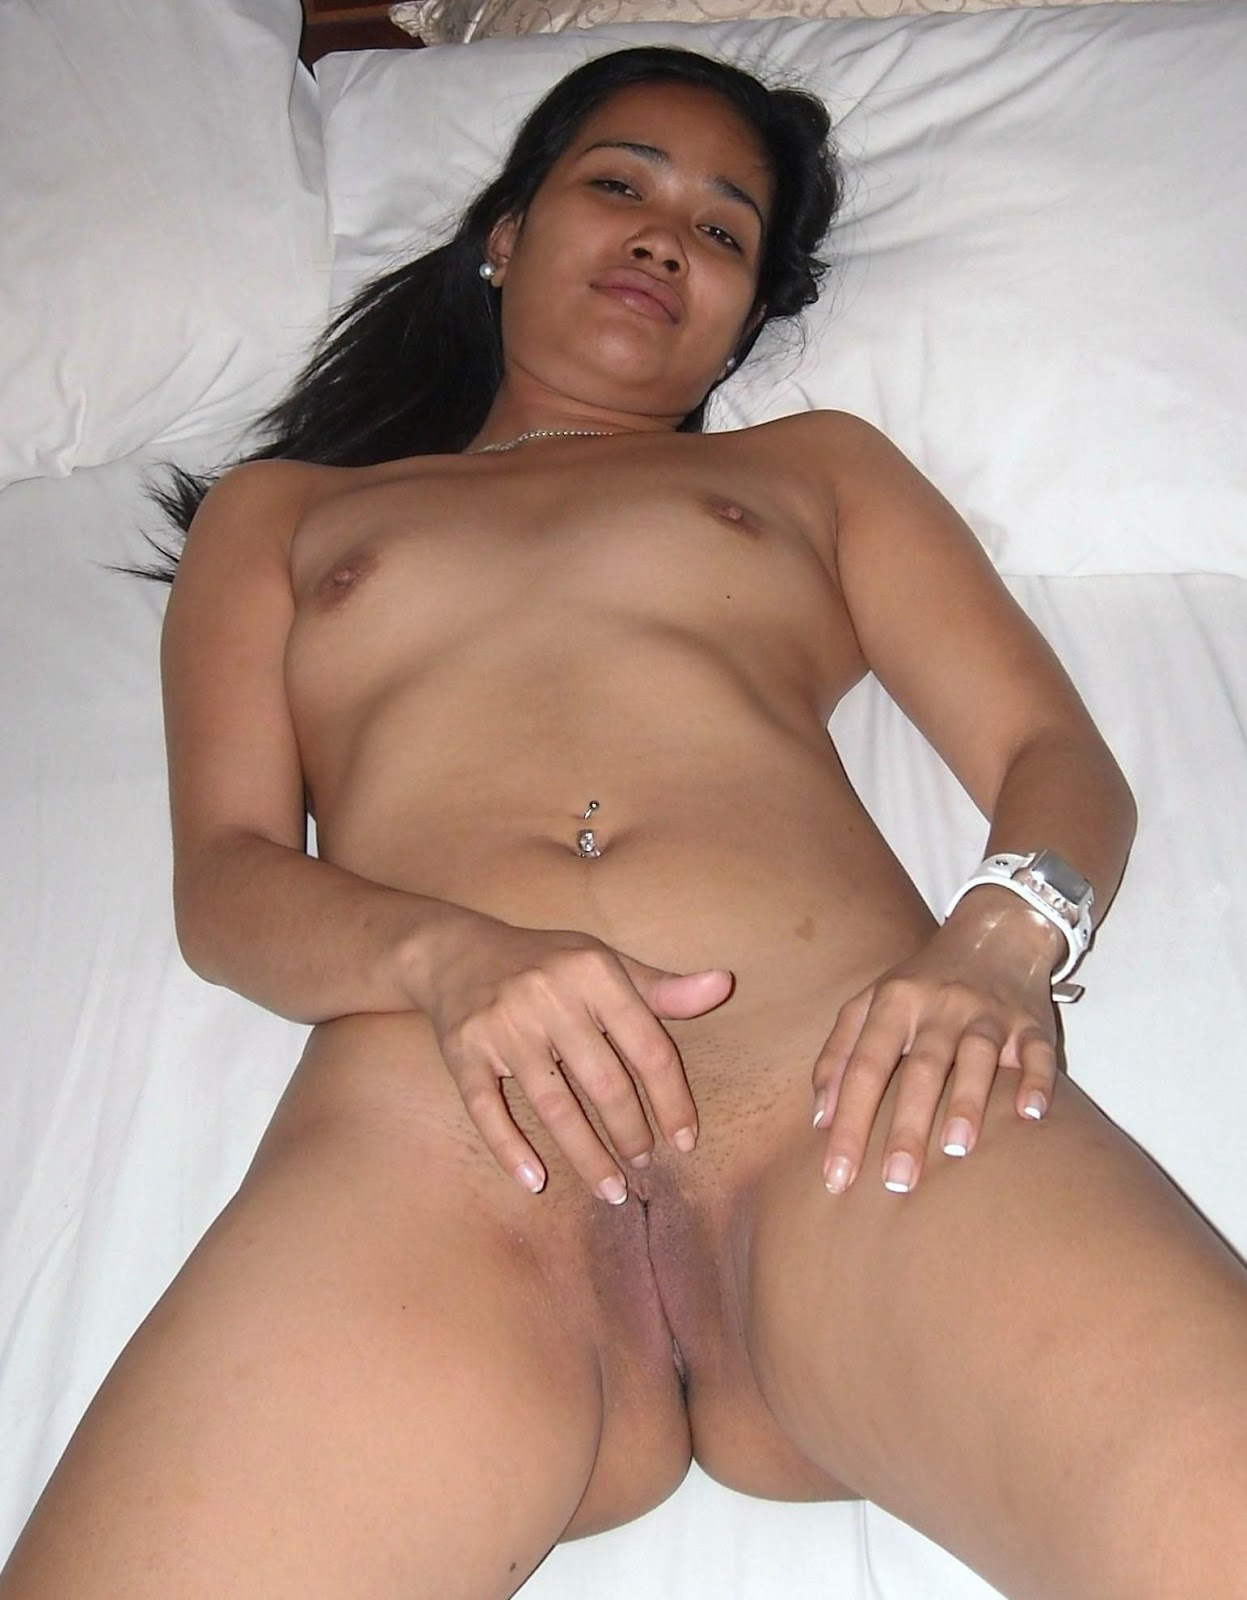 nude filipina videos